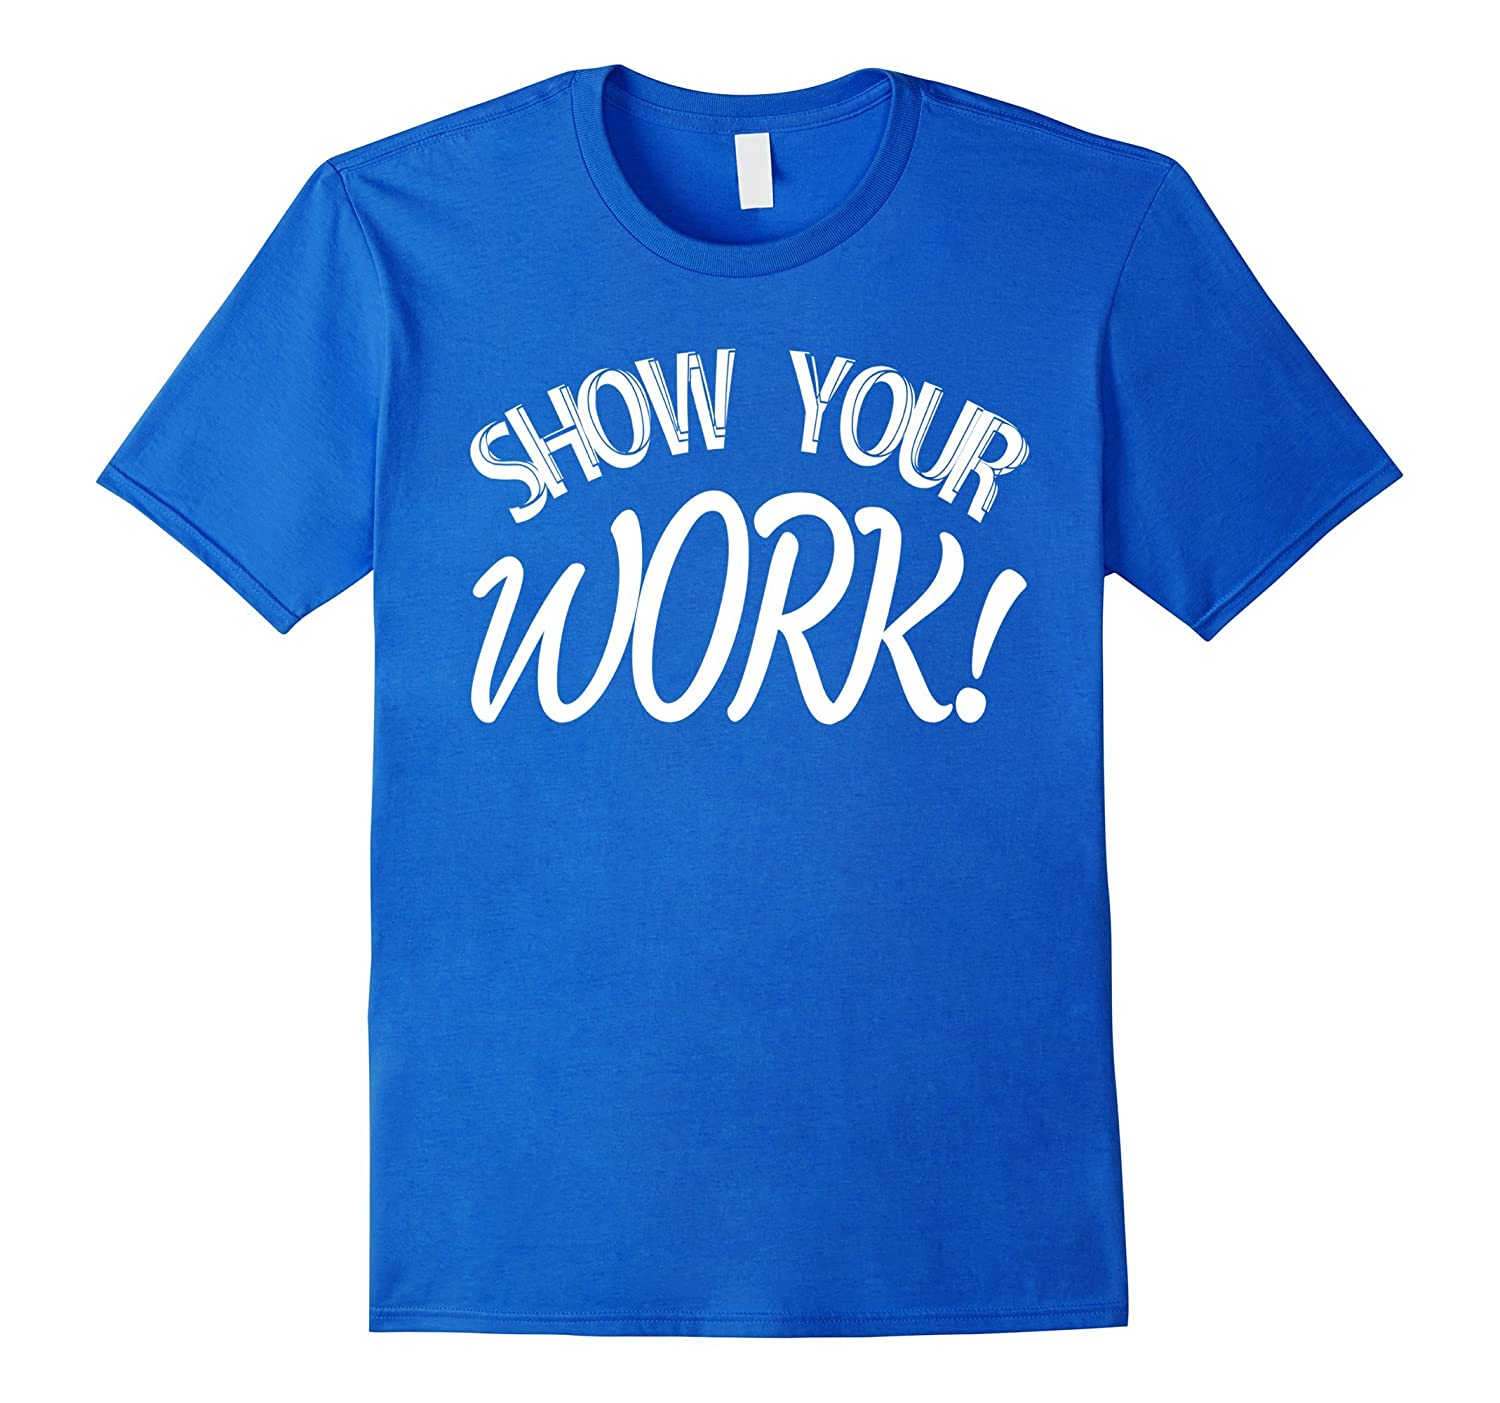 Show Your Work Shirt, Funny Teacher Shirt-CL